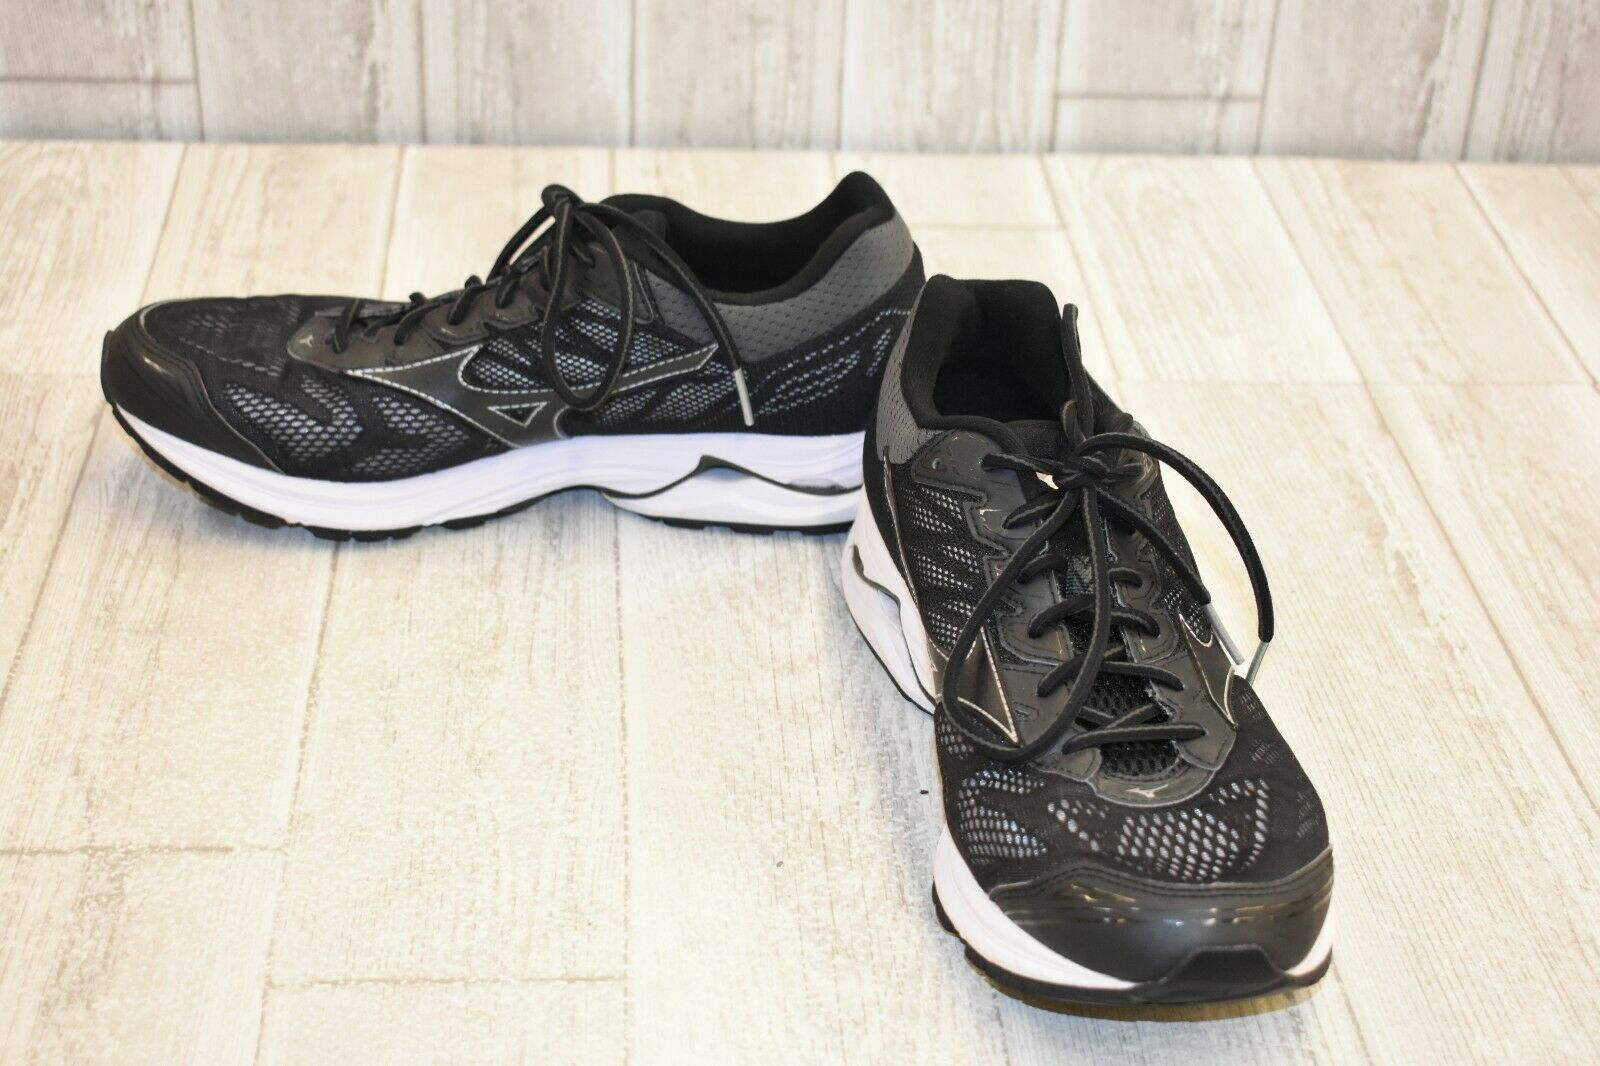 Men's Wave Wave Wave Rider 21 Running shoes - Black White - Size 11.5 2d5a1d